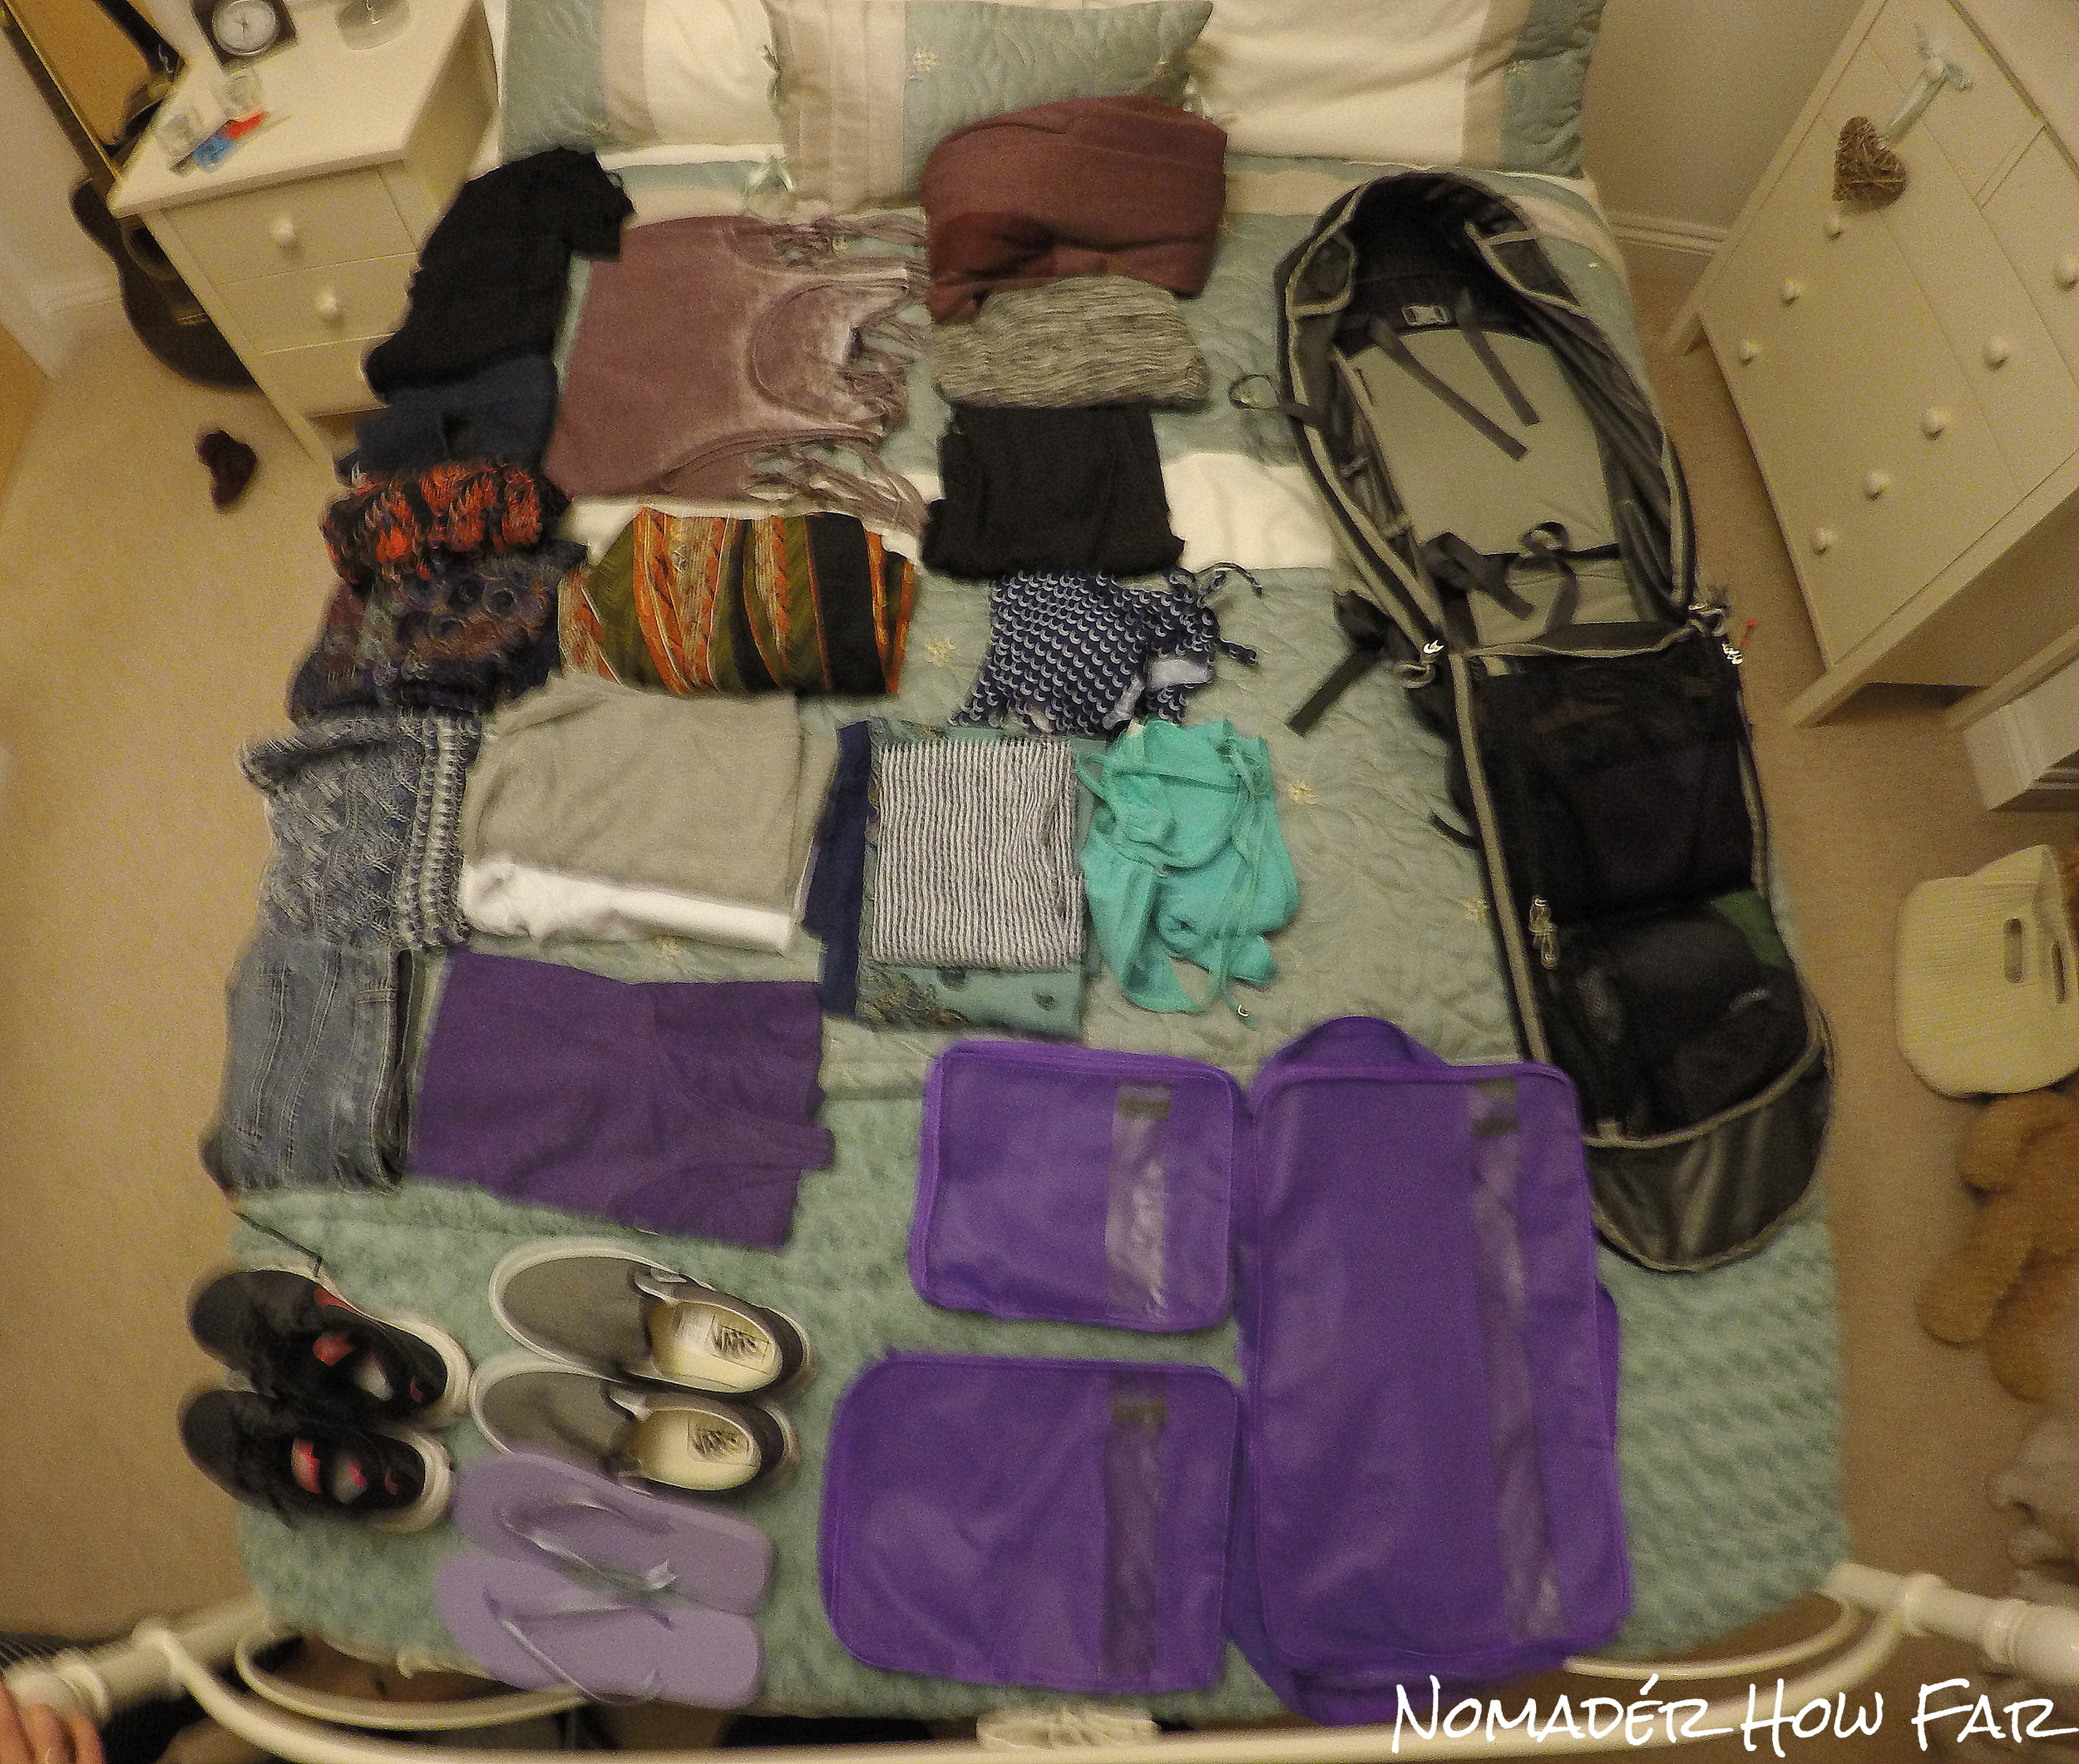 STAGE 1: Clothes Overload